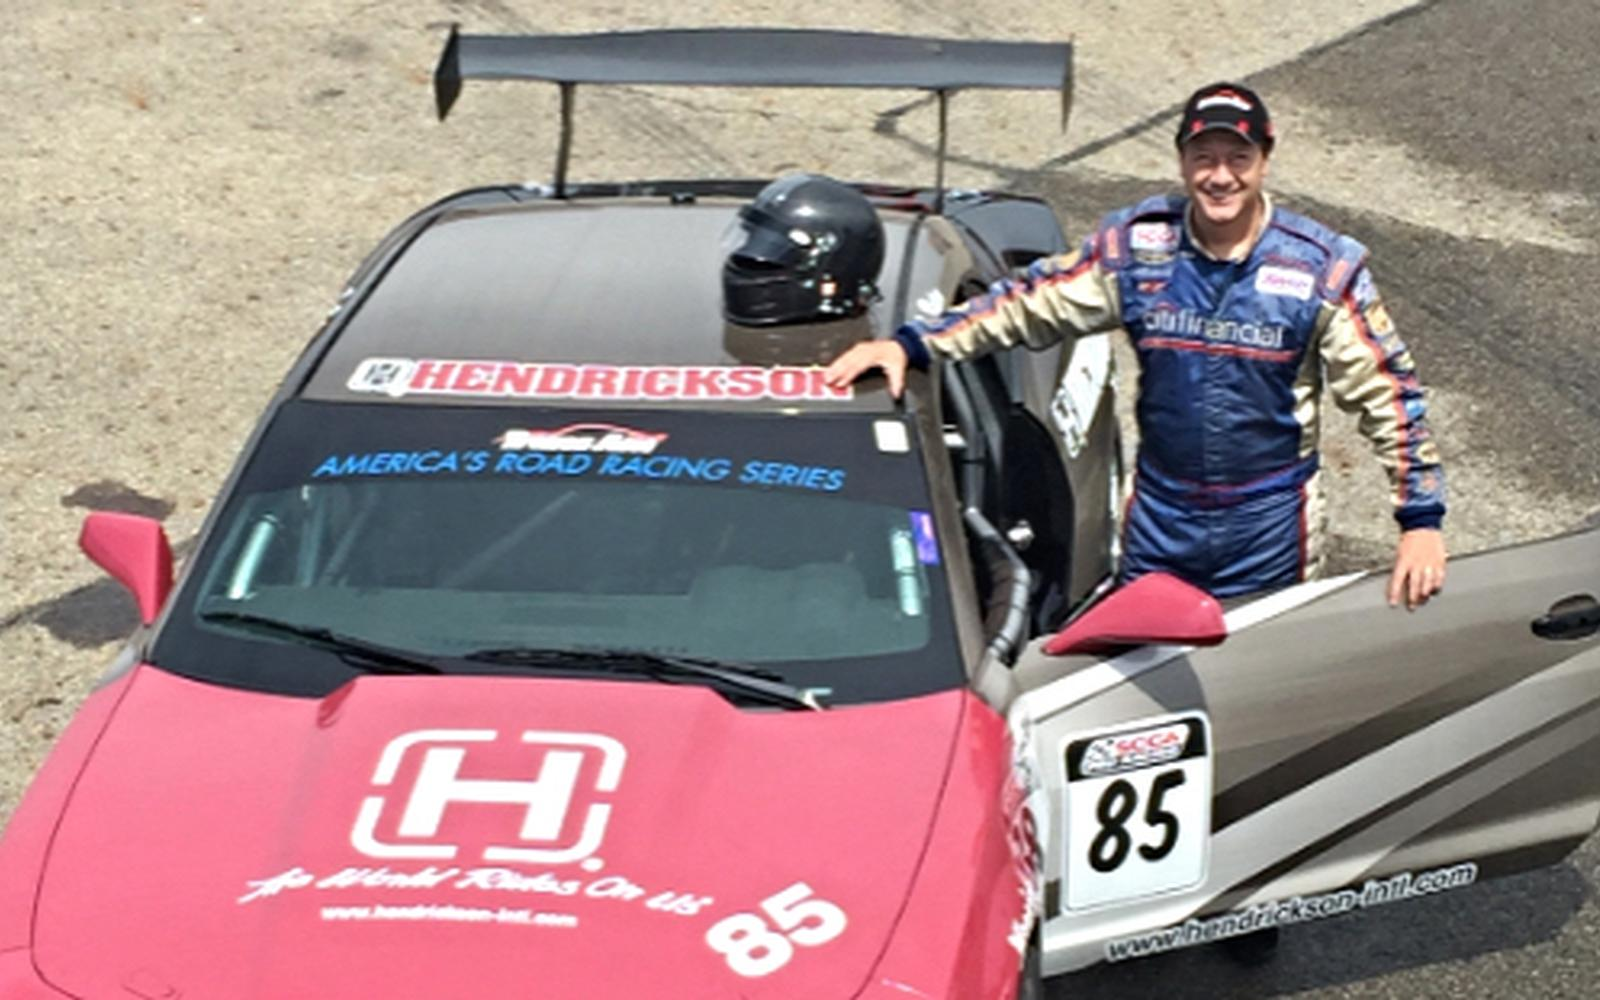 Baten and Hendrickson Team Up for Trans Am Debut at Mid-Ohio